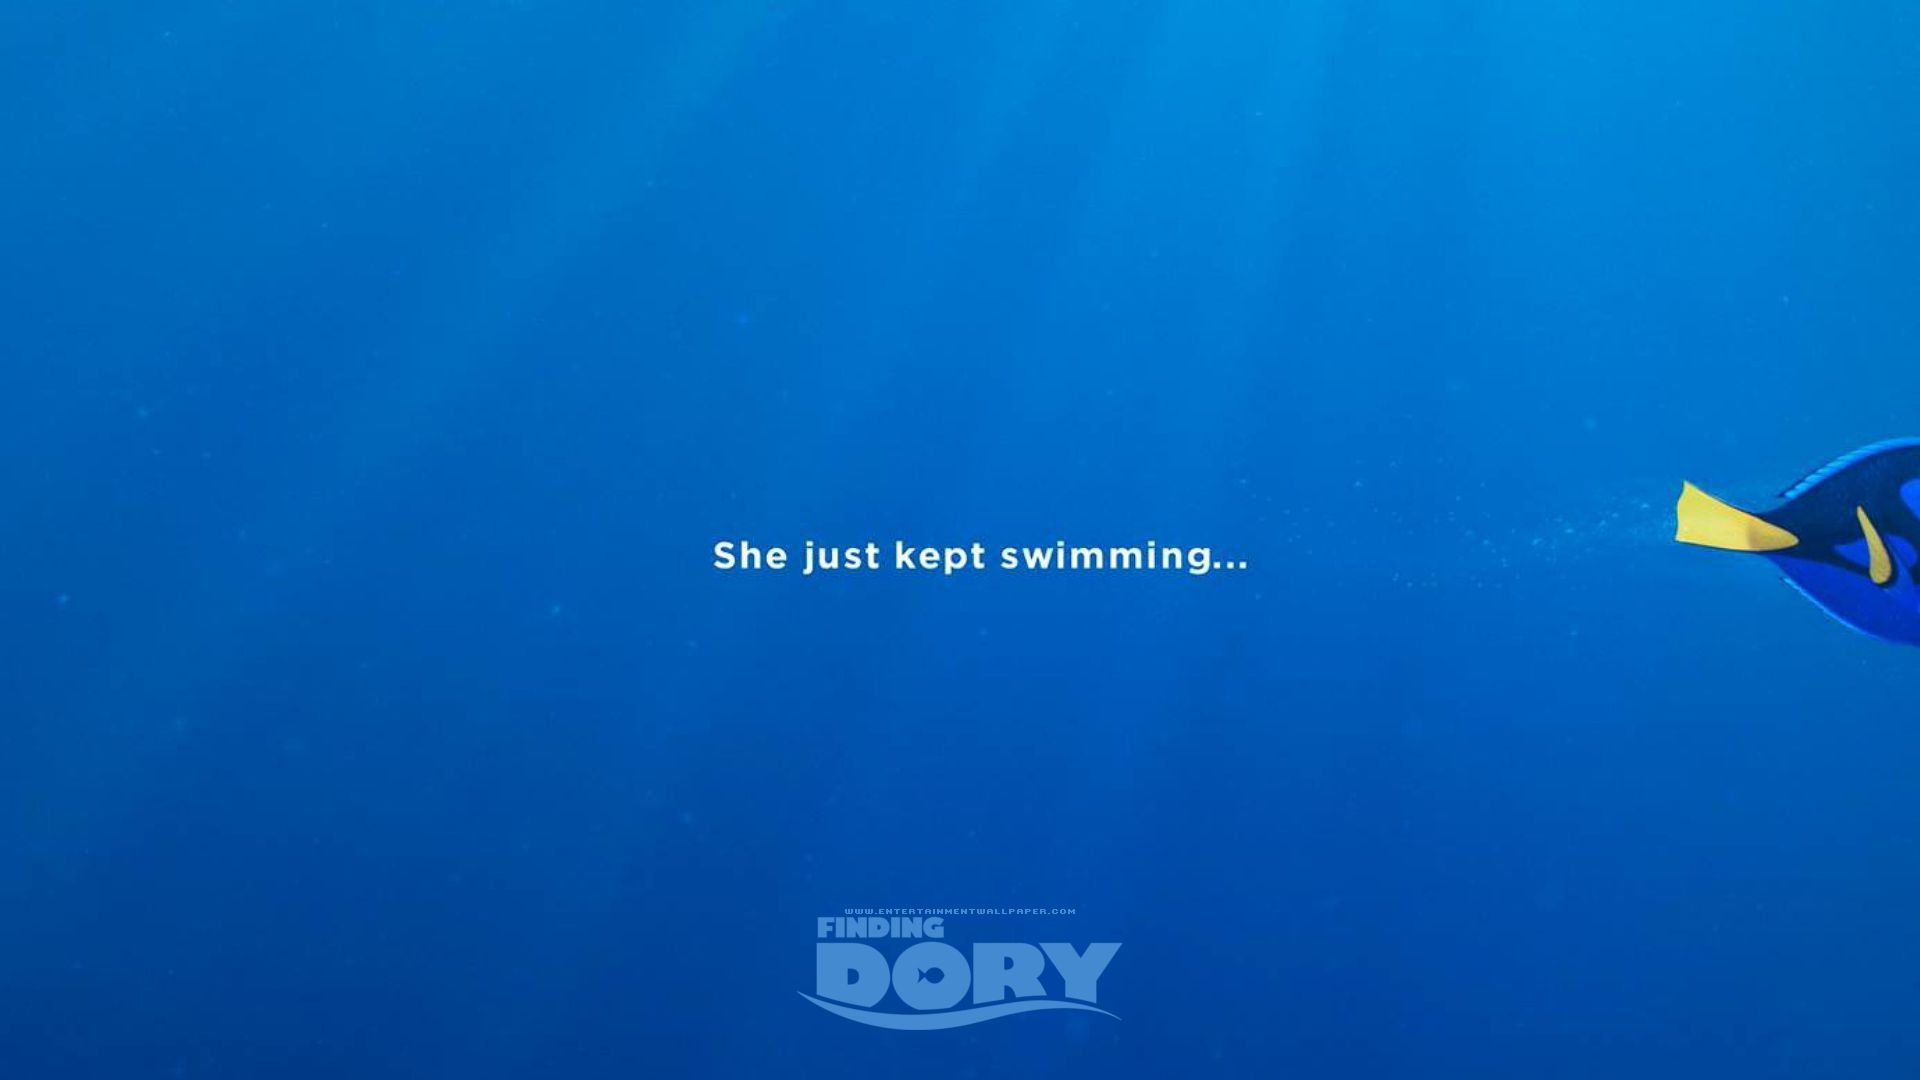 Best Finding Dory Wallpapers Hd Hd Picturez 1801 1200 Finding Dory Wallpapers 36 Wallpapers Adorable Wallpapers Dory Finding Dory Finding Dory Movie